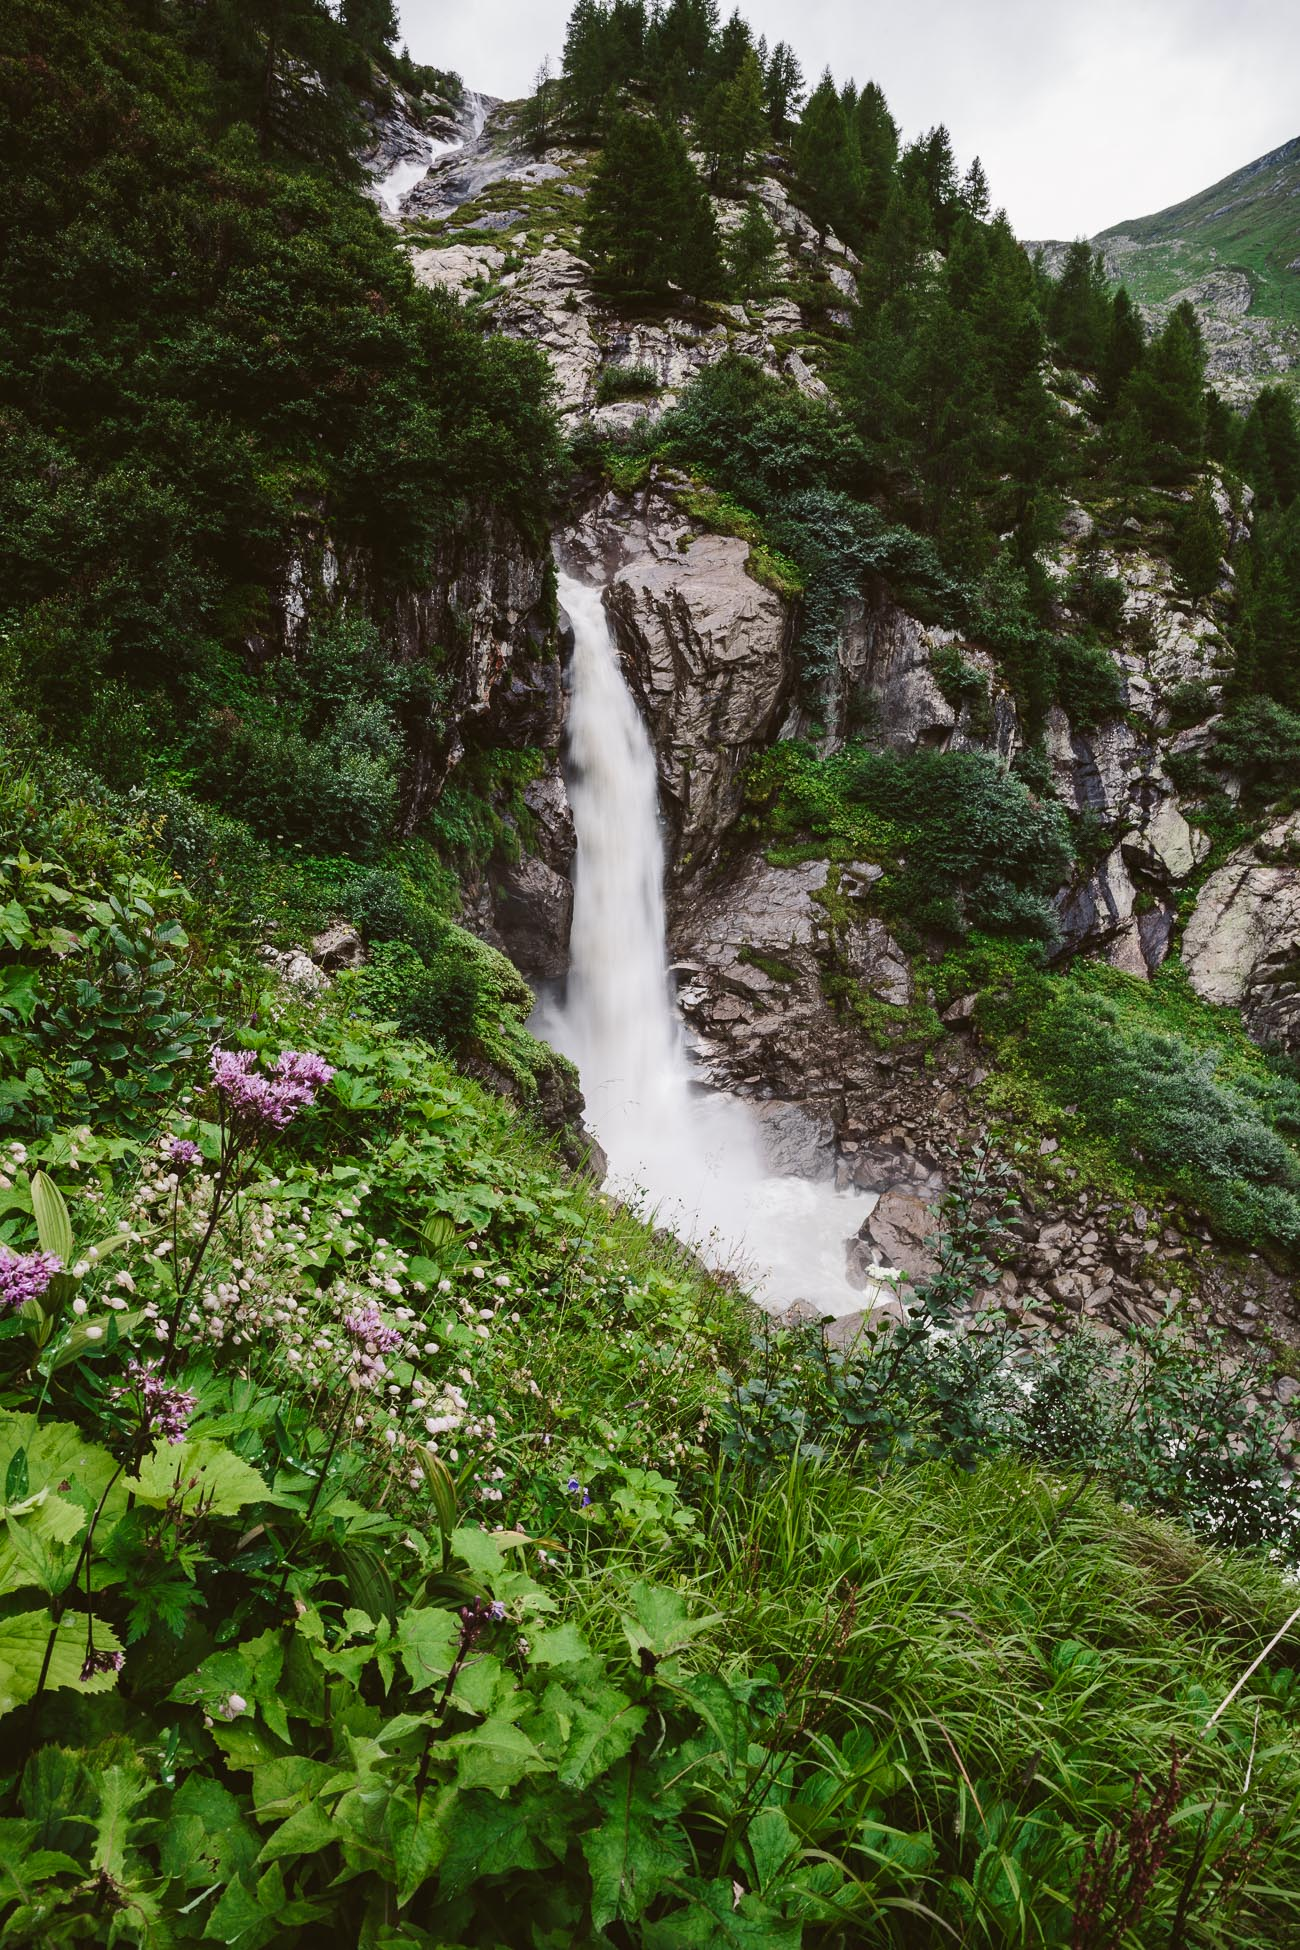 Waterfall at Innergschlöss